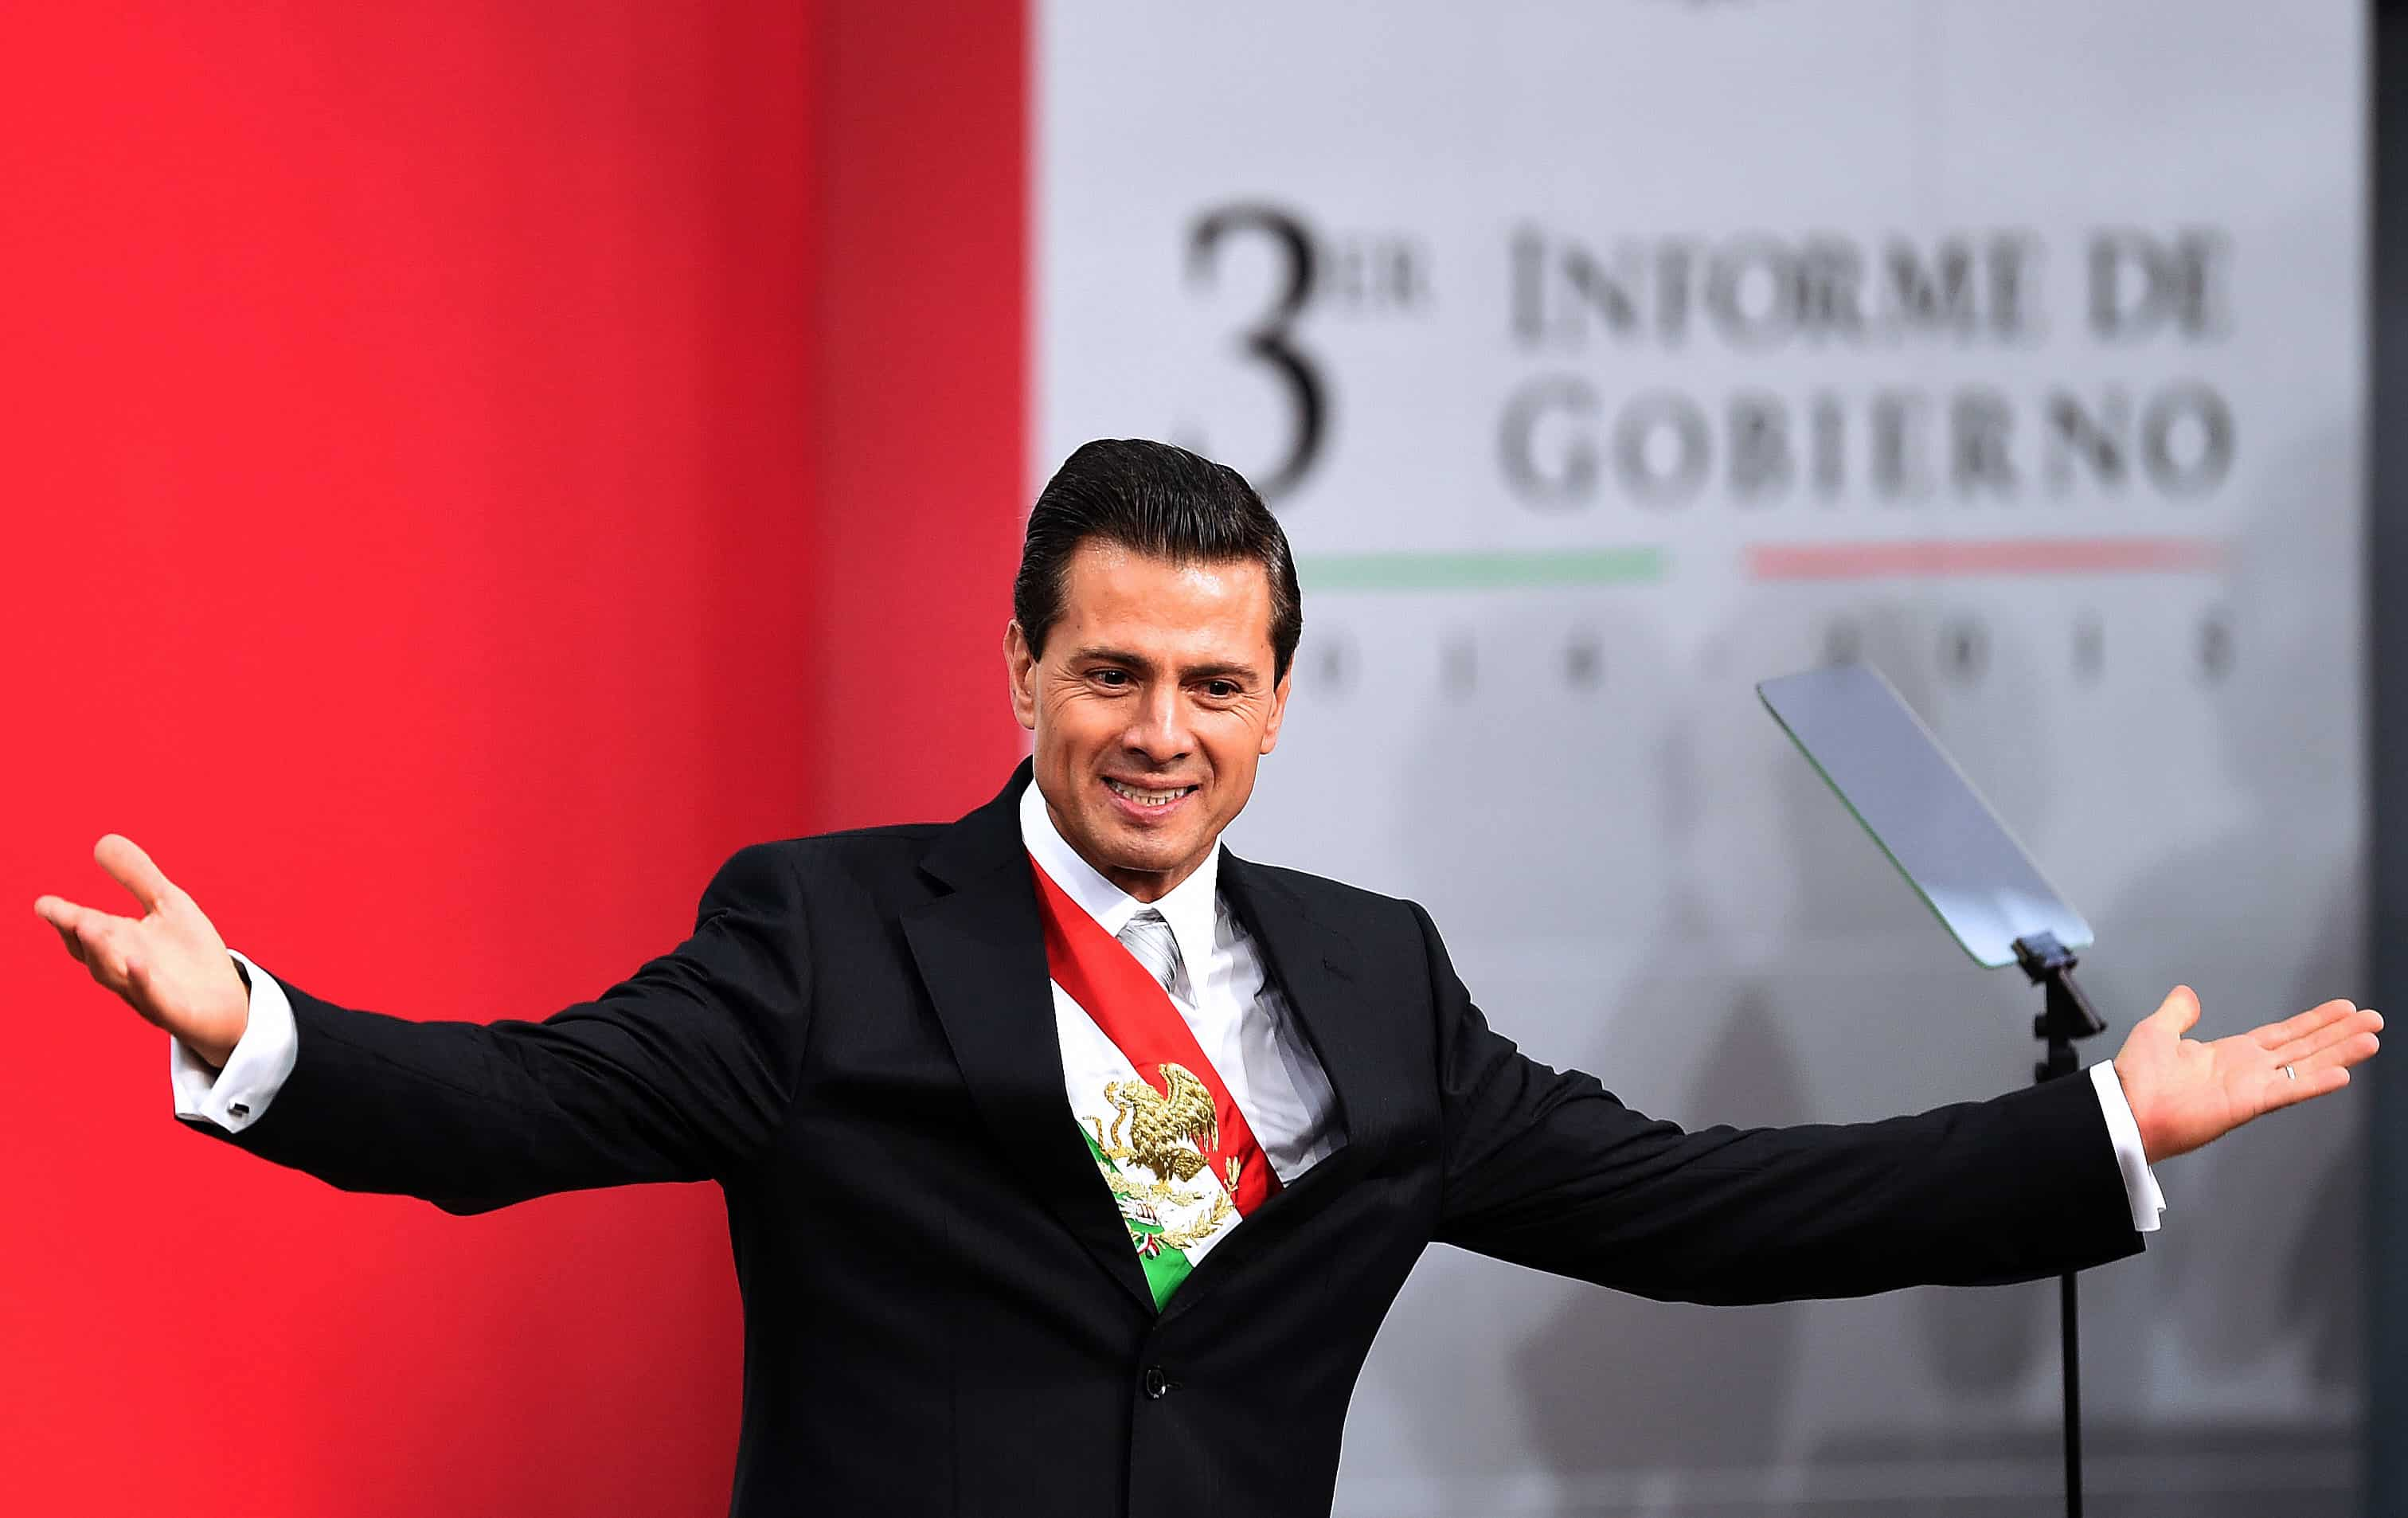 Mexican President Enrique Peña Nieto delivers his third annual report at the National Palace in Mexico City, on Sept. 2, 2015.